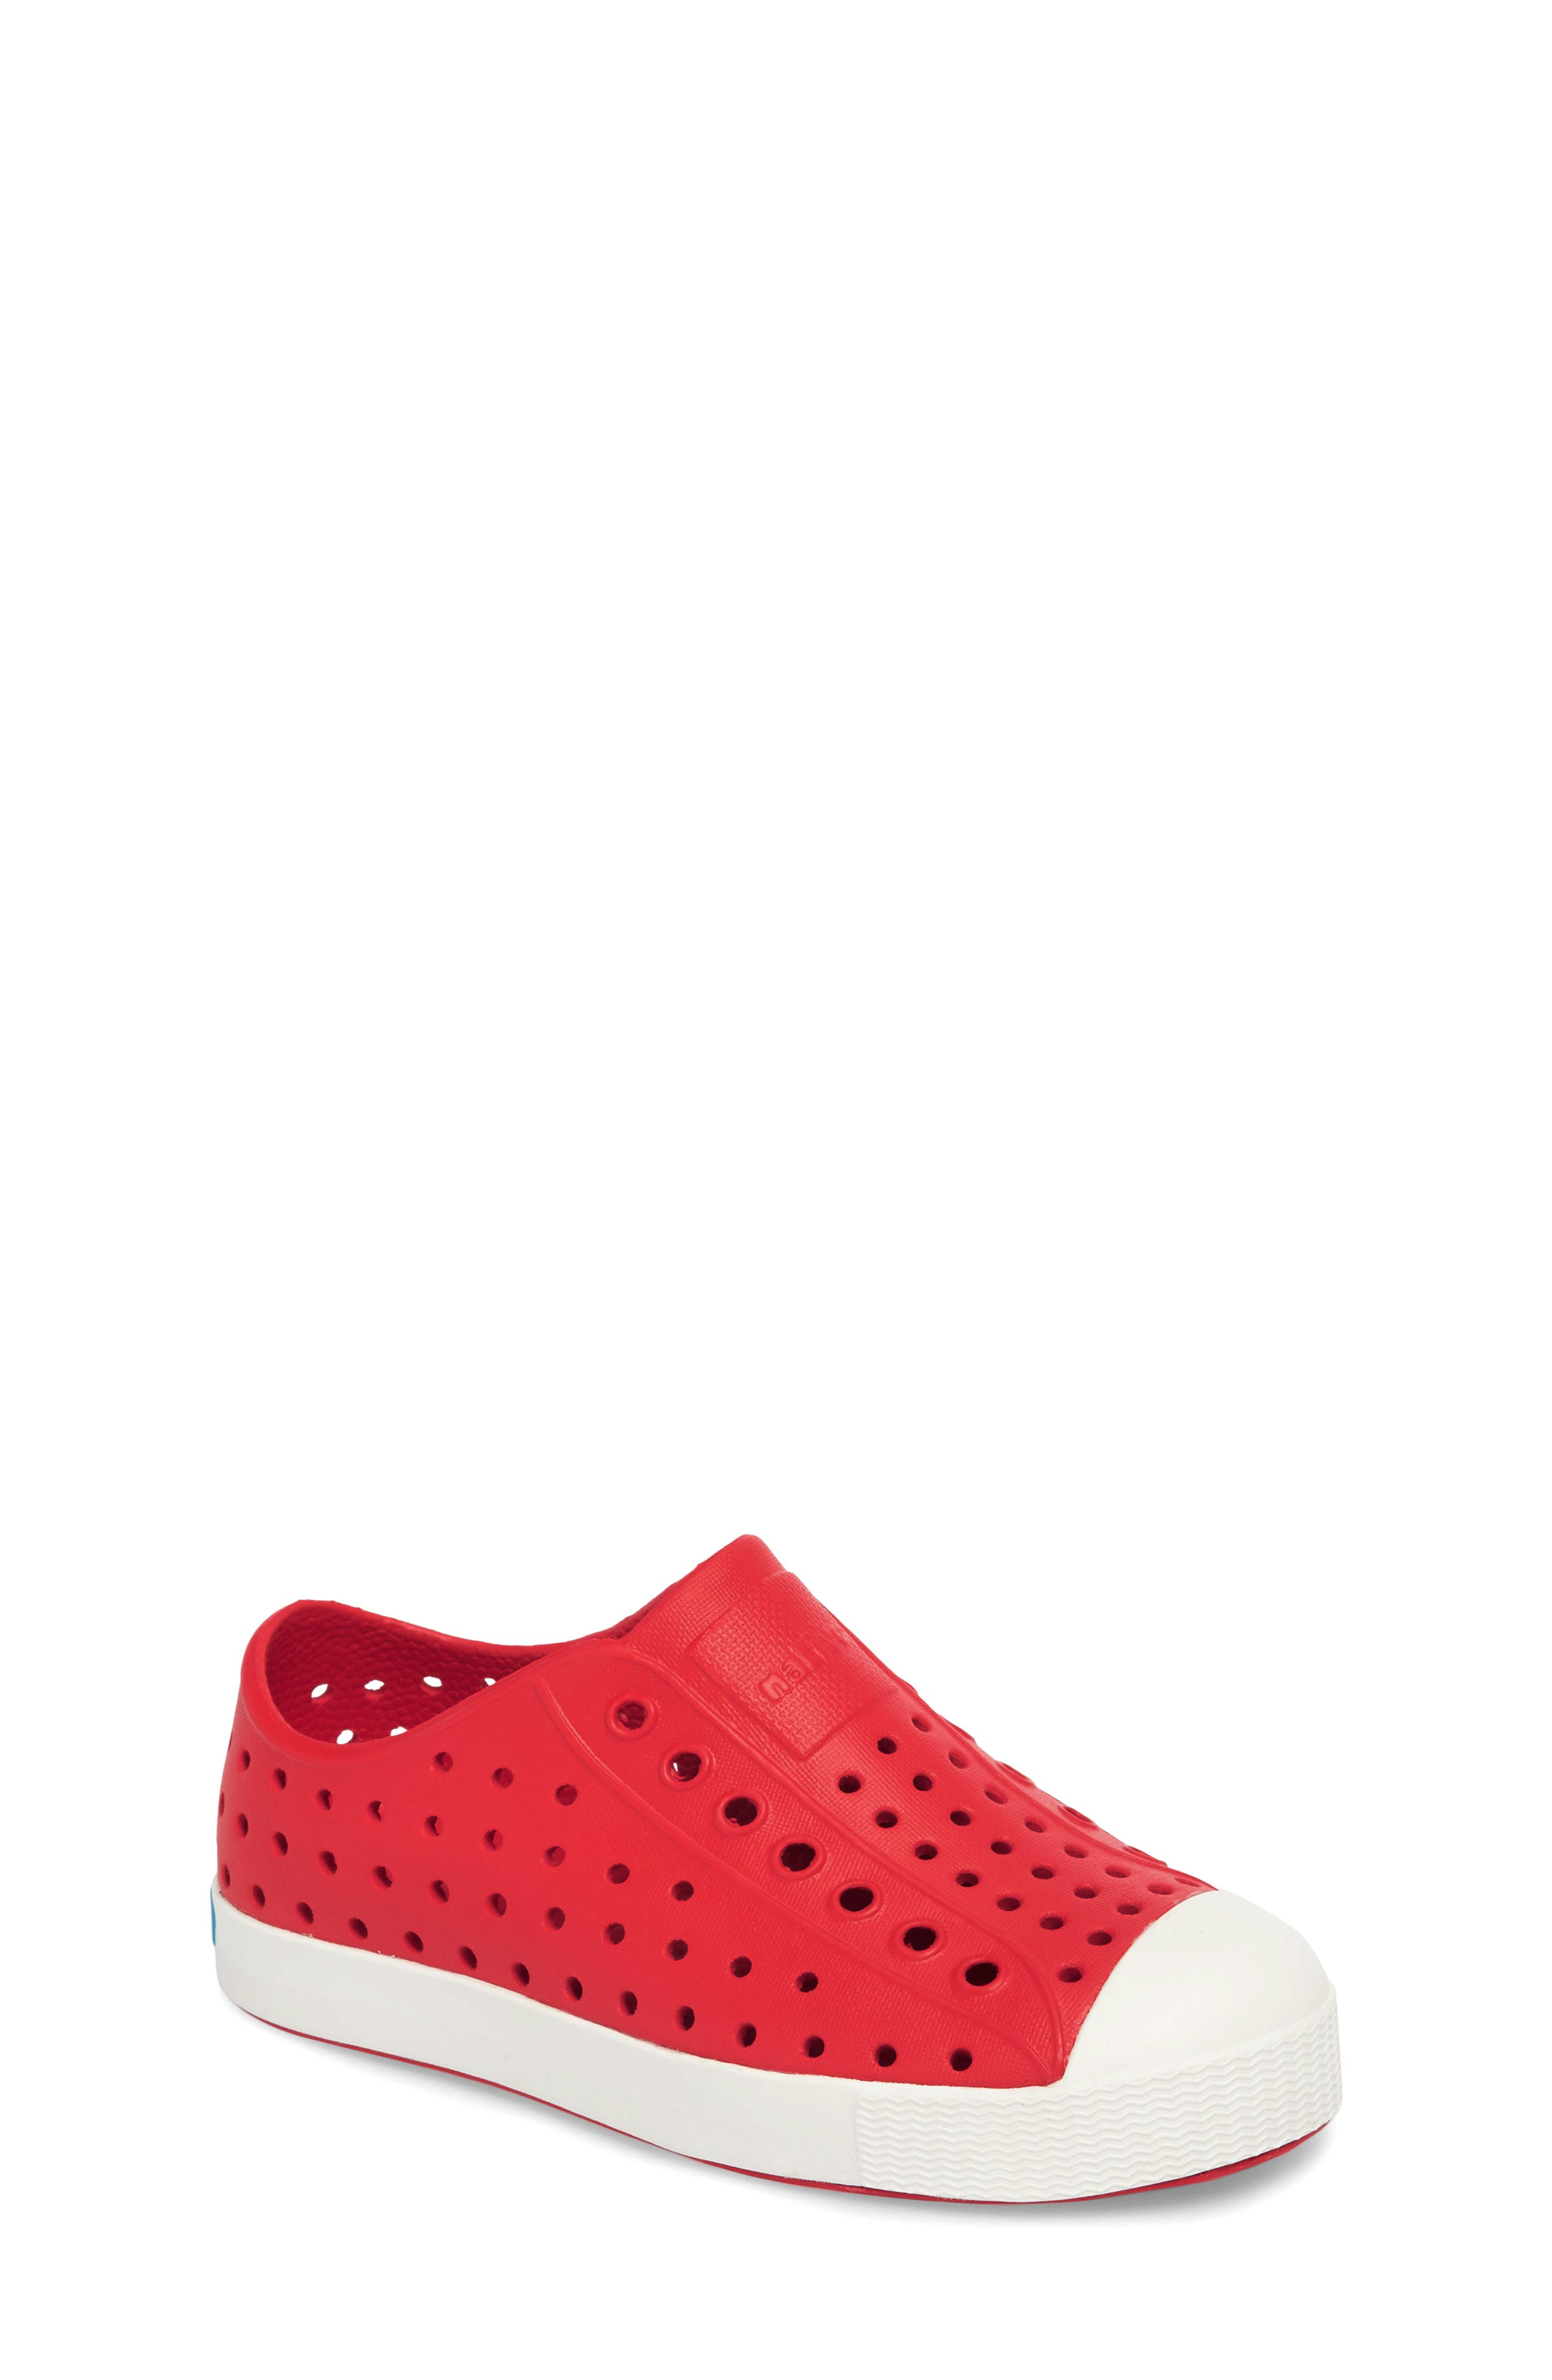 NATIVE SHOES Jefferson Water Friendly Slip-On Vegan Sneaker, Main, color, TORCH RED/ SHELL WHITE